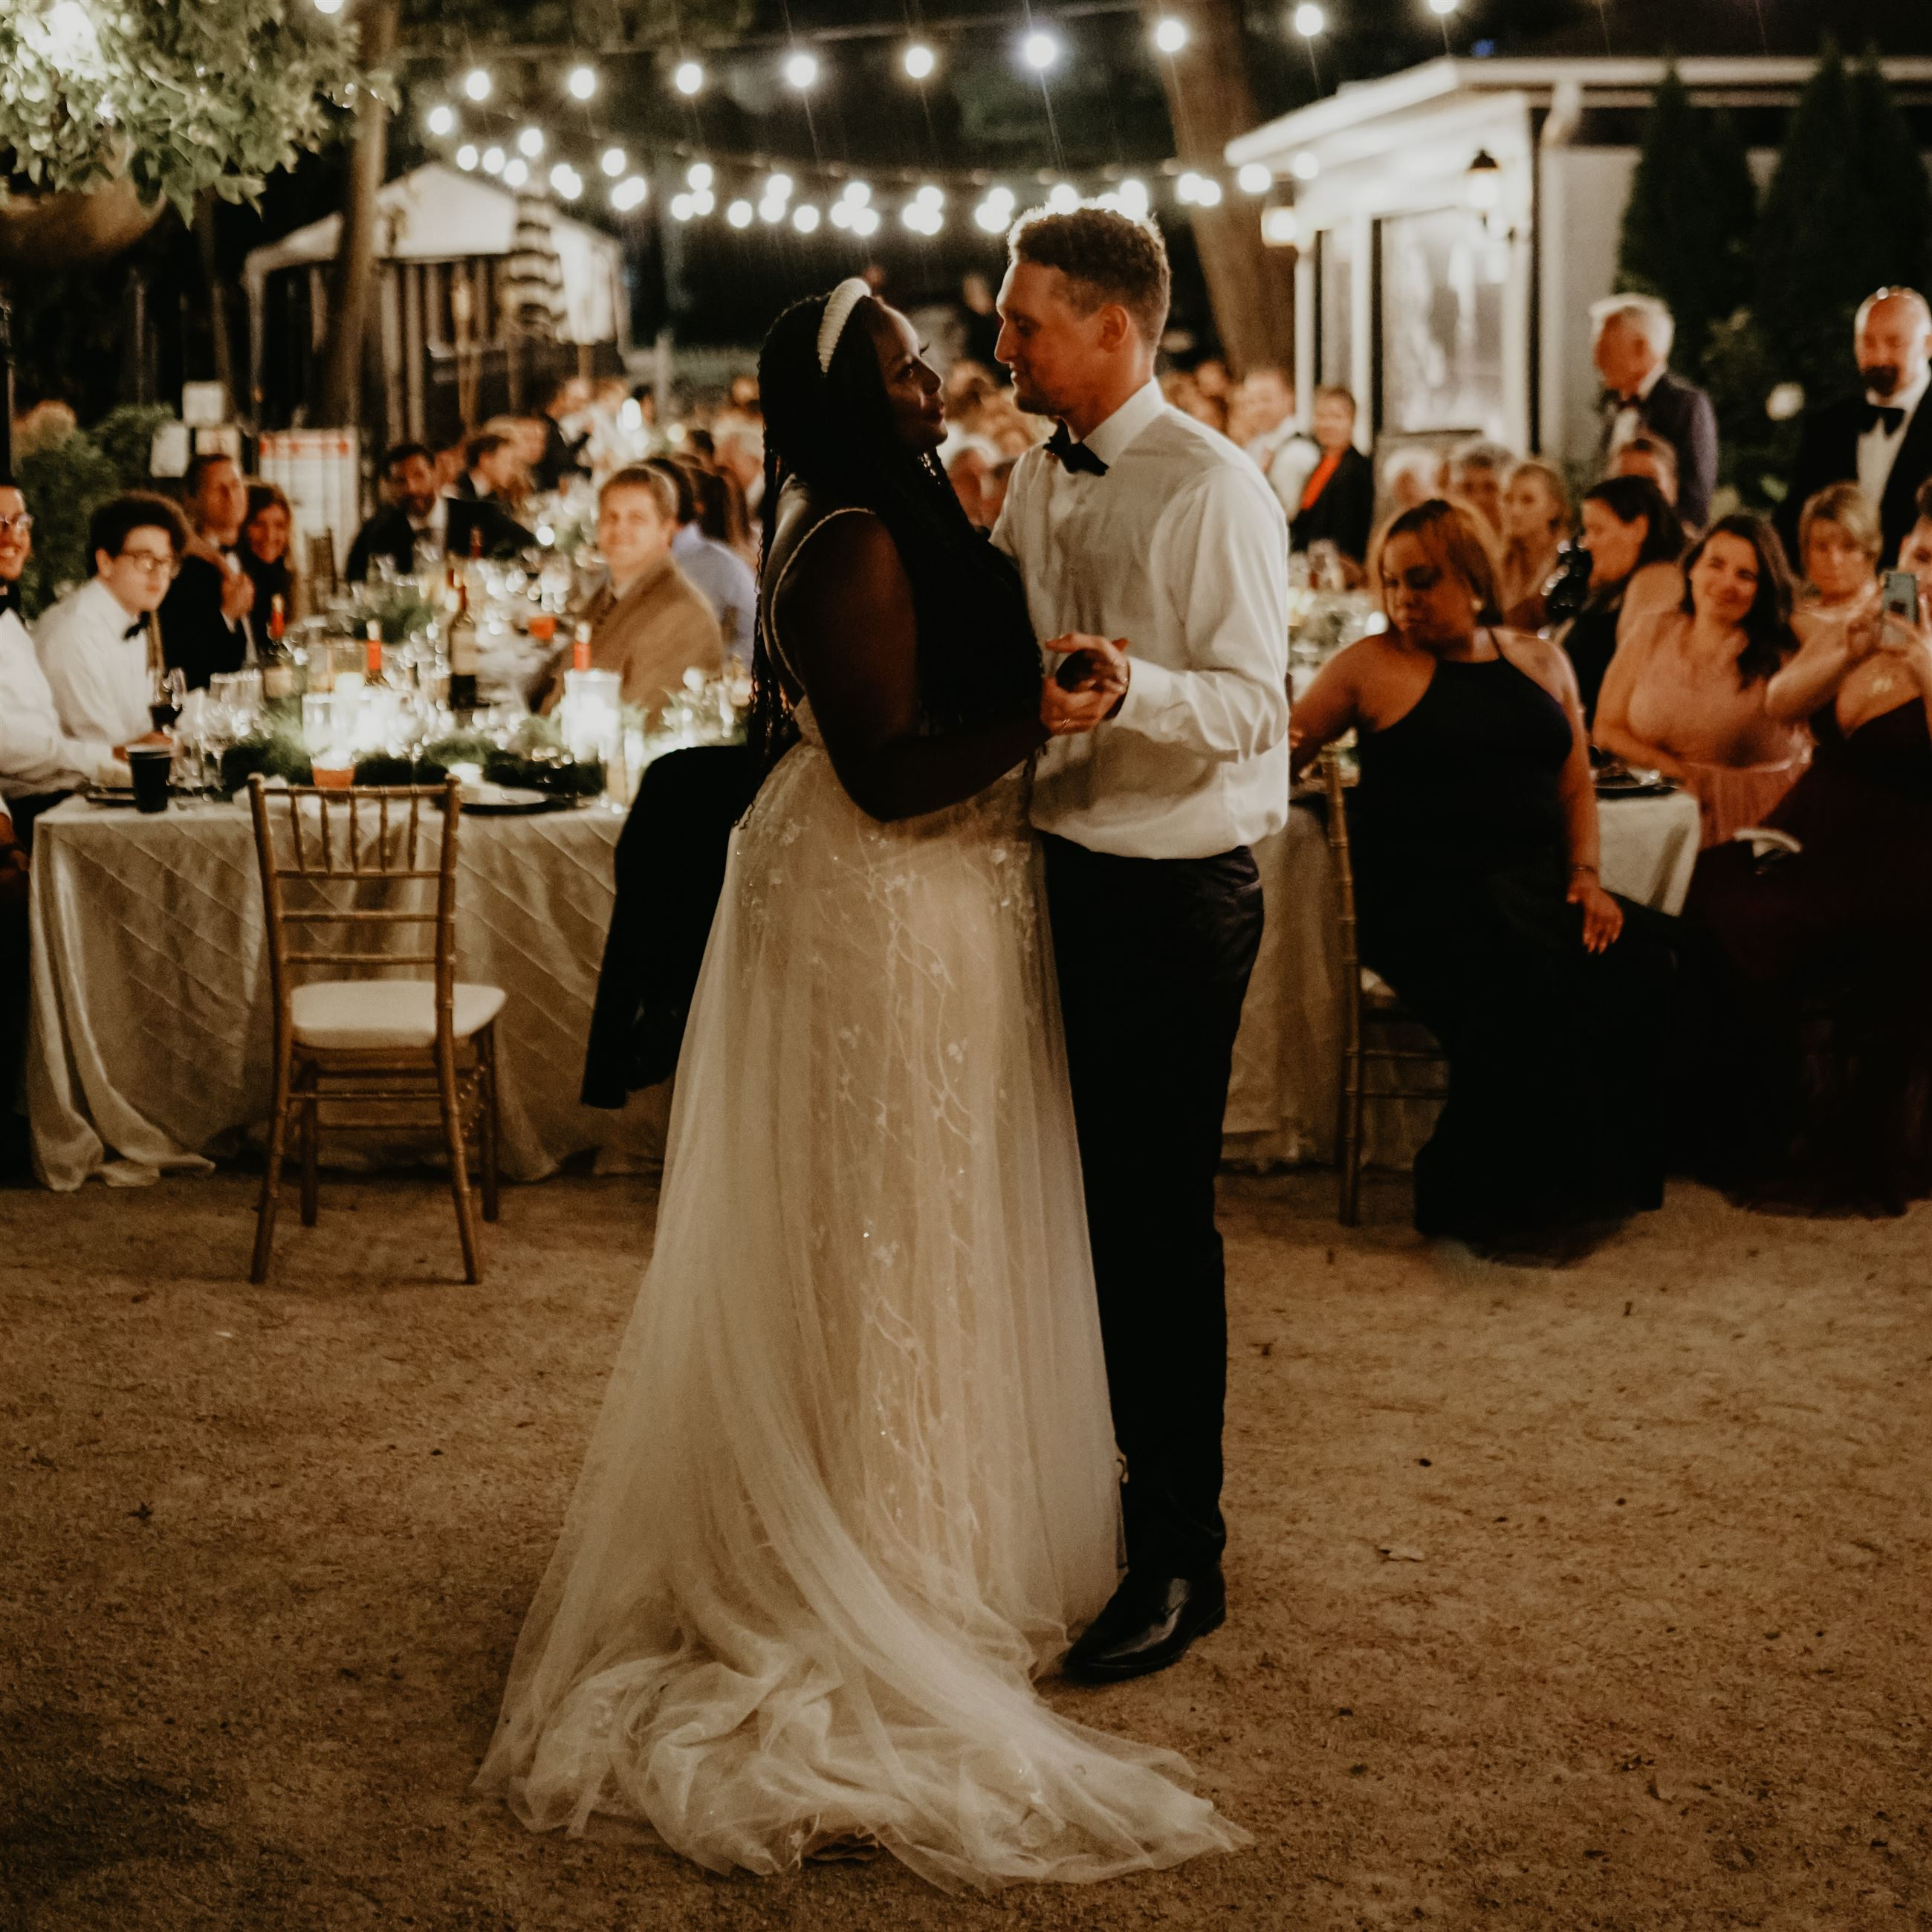 Bride and groom dancing together after their wedding reception